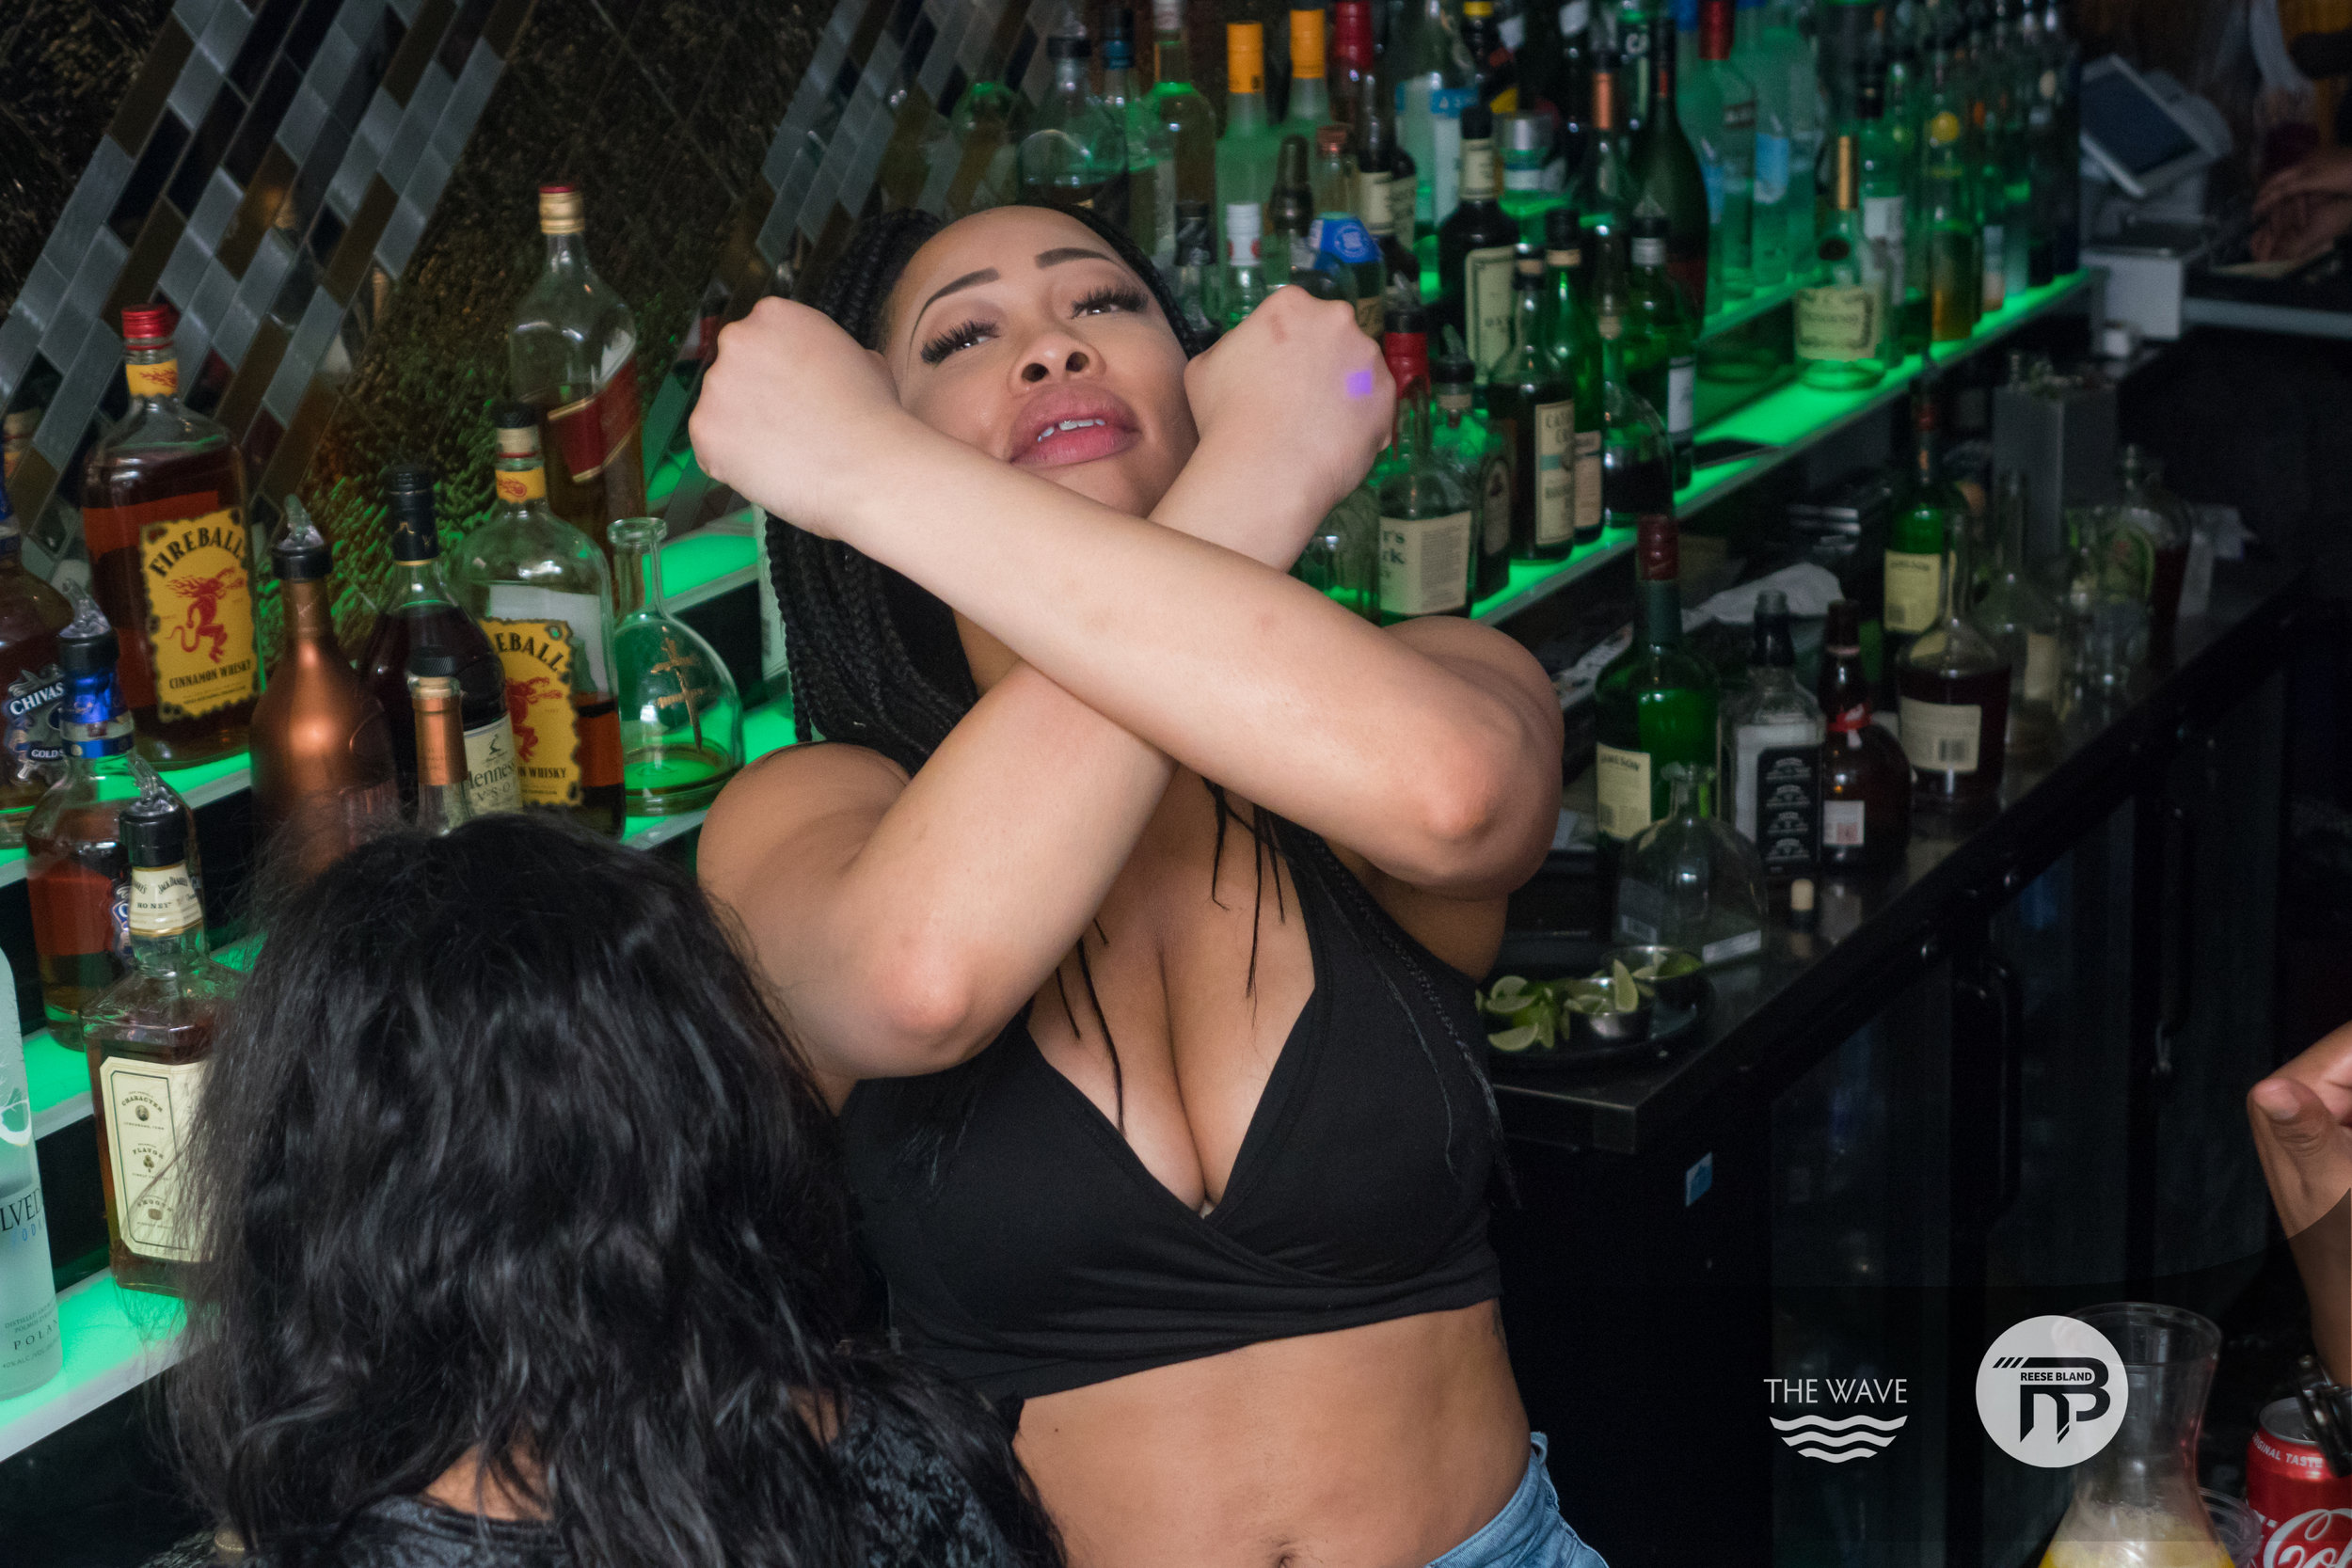 WaveDC-BlackBarCrawl-2-2018-06693.jpg